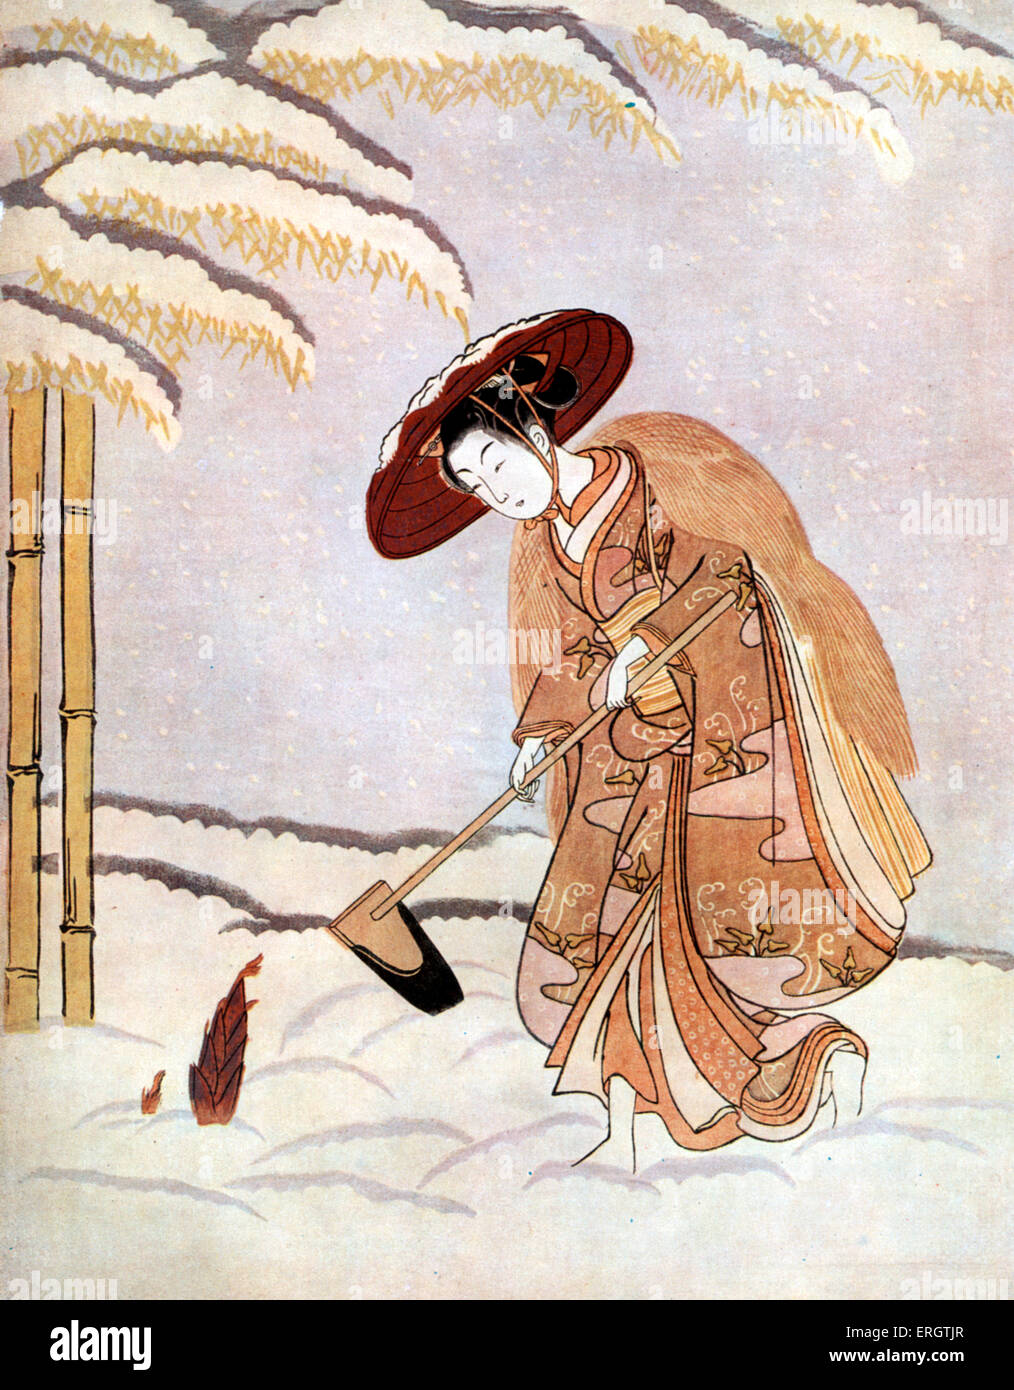 Young Japanese woman in kimono with straw hat - discovering a bamboo sprout beneath the snow. Print by Suzuki Harunobu, - Stock Image